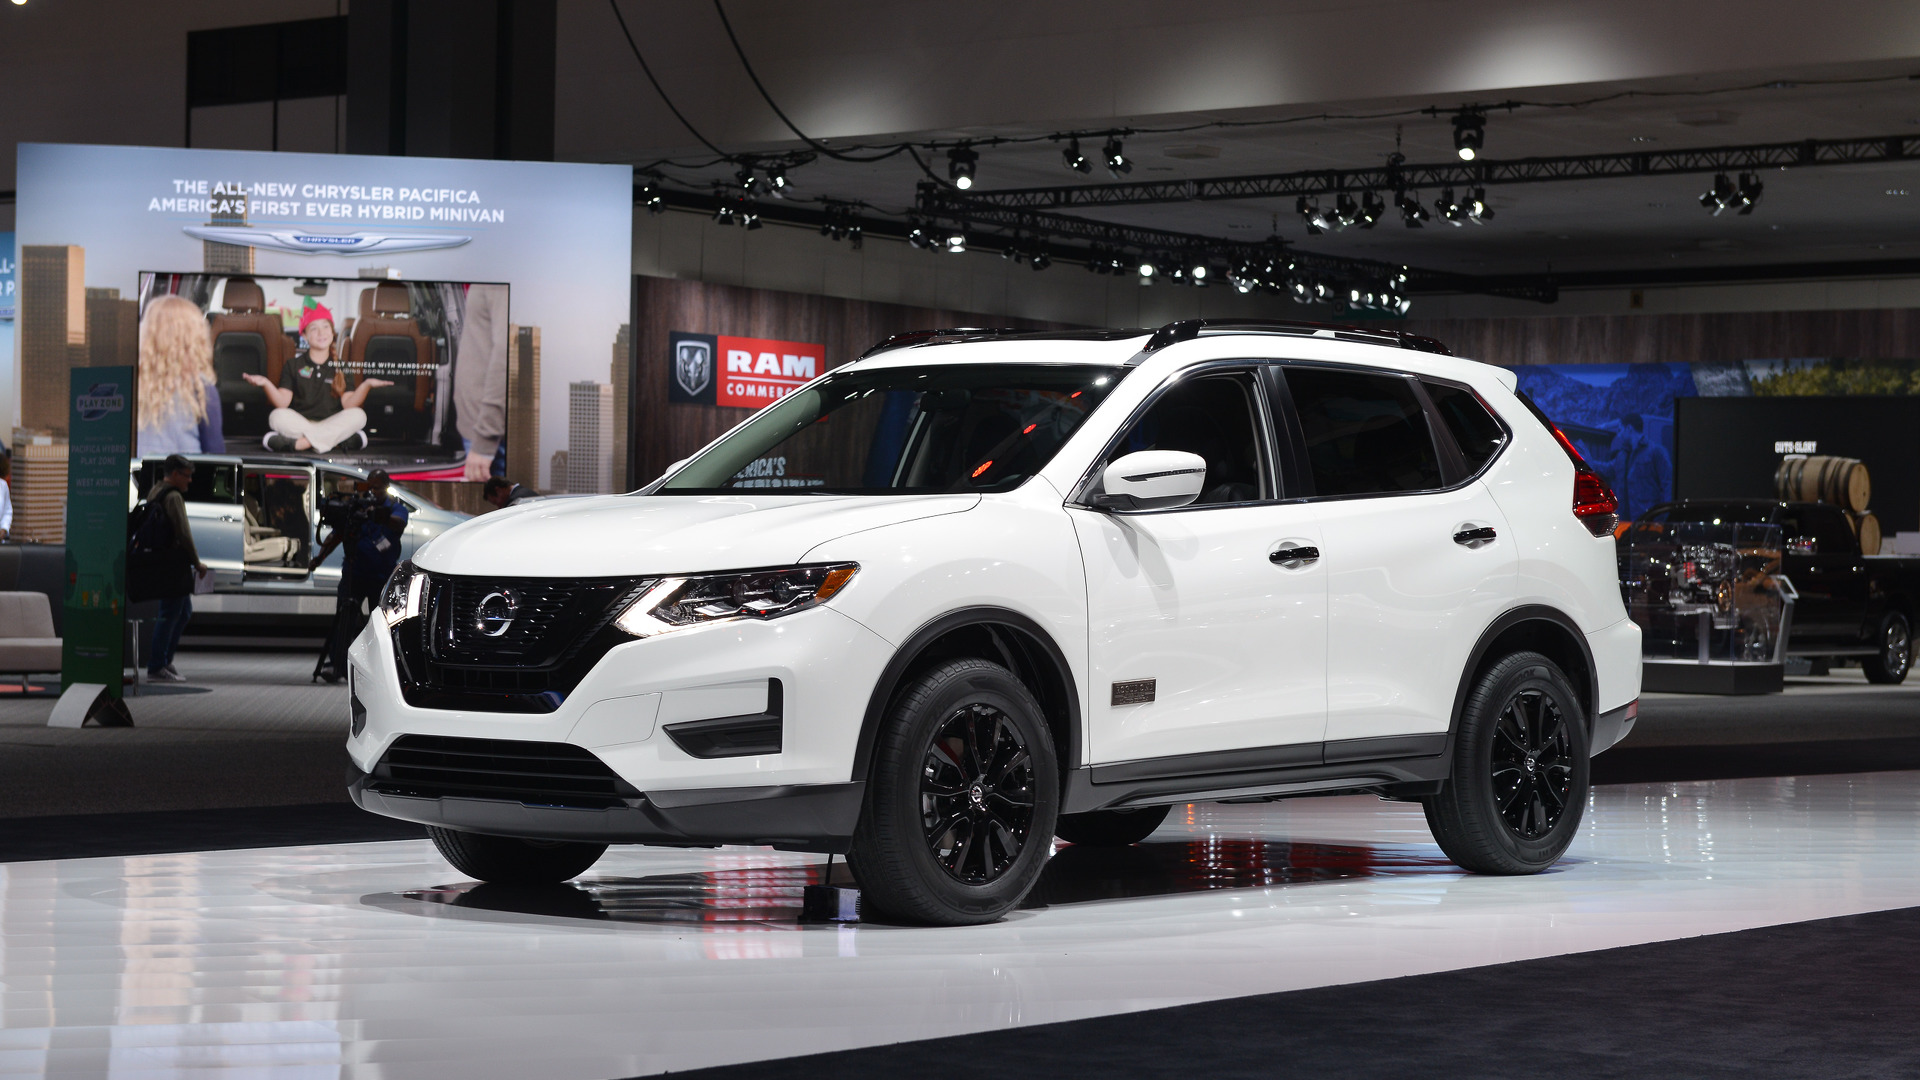 2017 Nissan Rogue Star Wars Edition Lands In L A With Full Size Tie Fighter